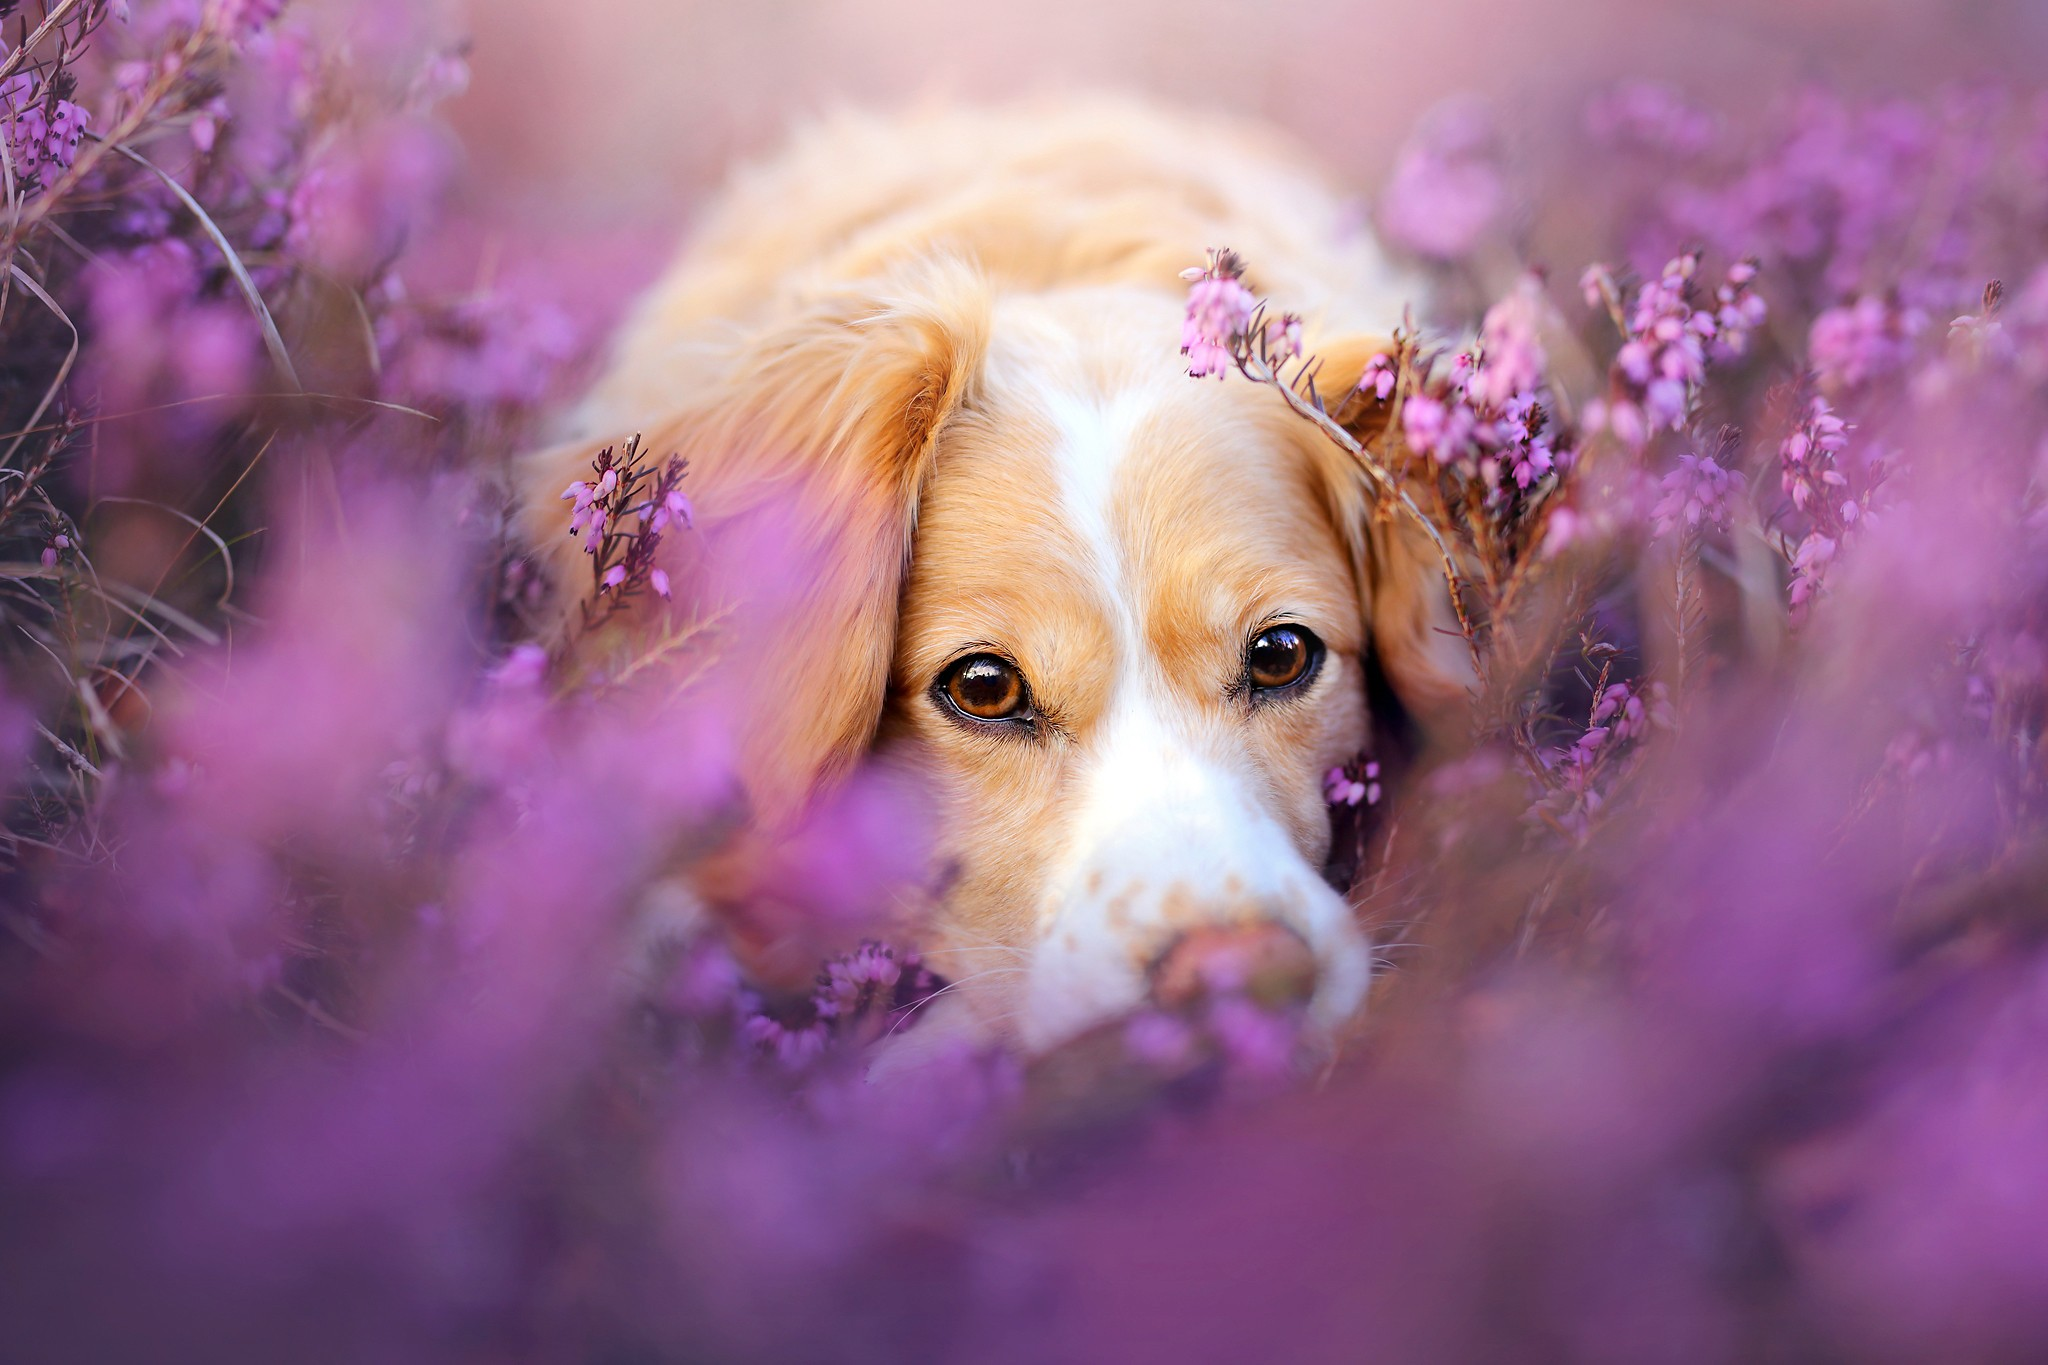 Cute Dog In Flowers, HD Animals, 4k Wallpapers, Images, Backgrounds ...